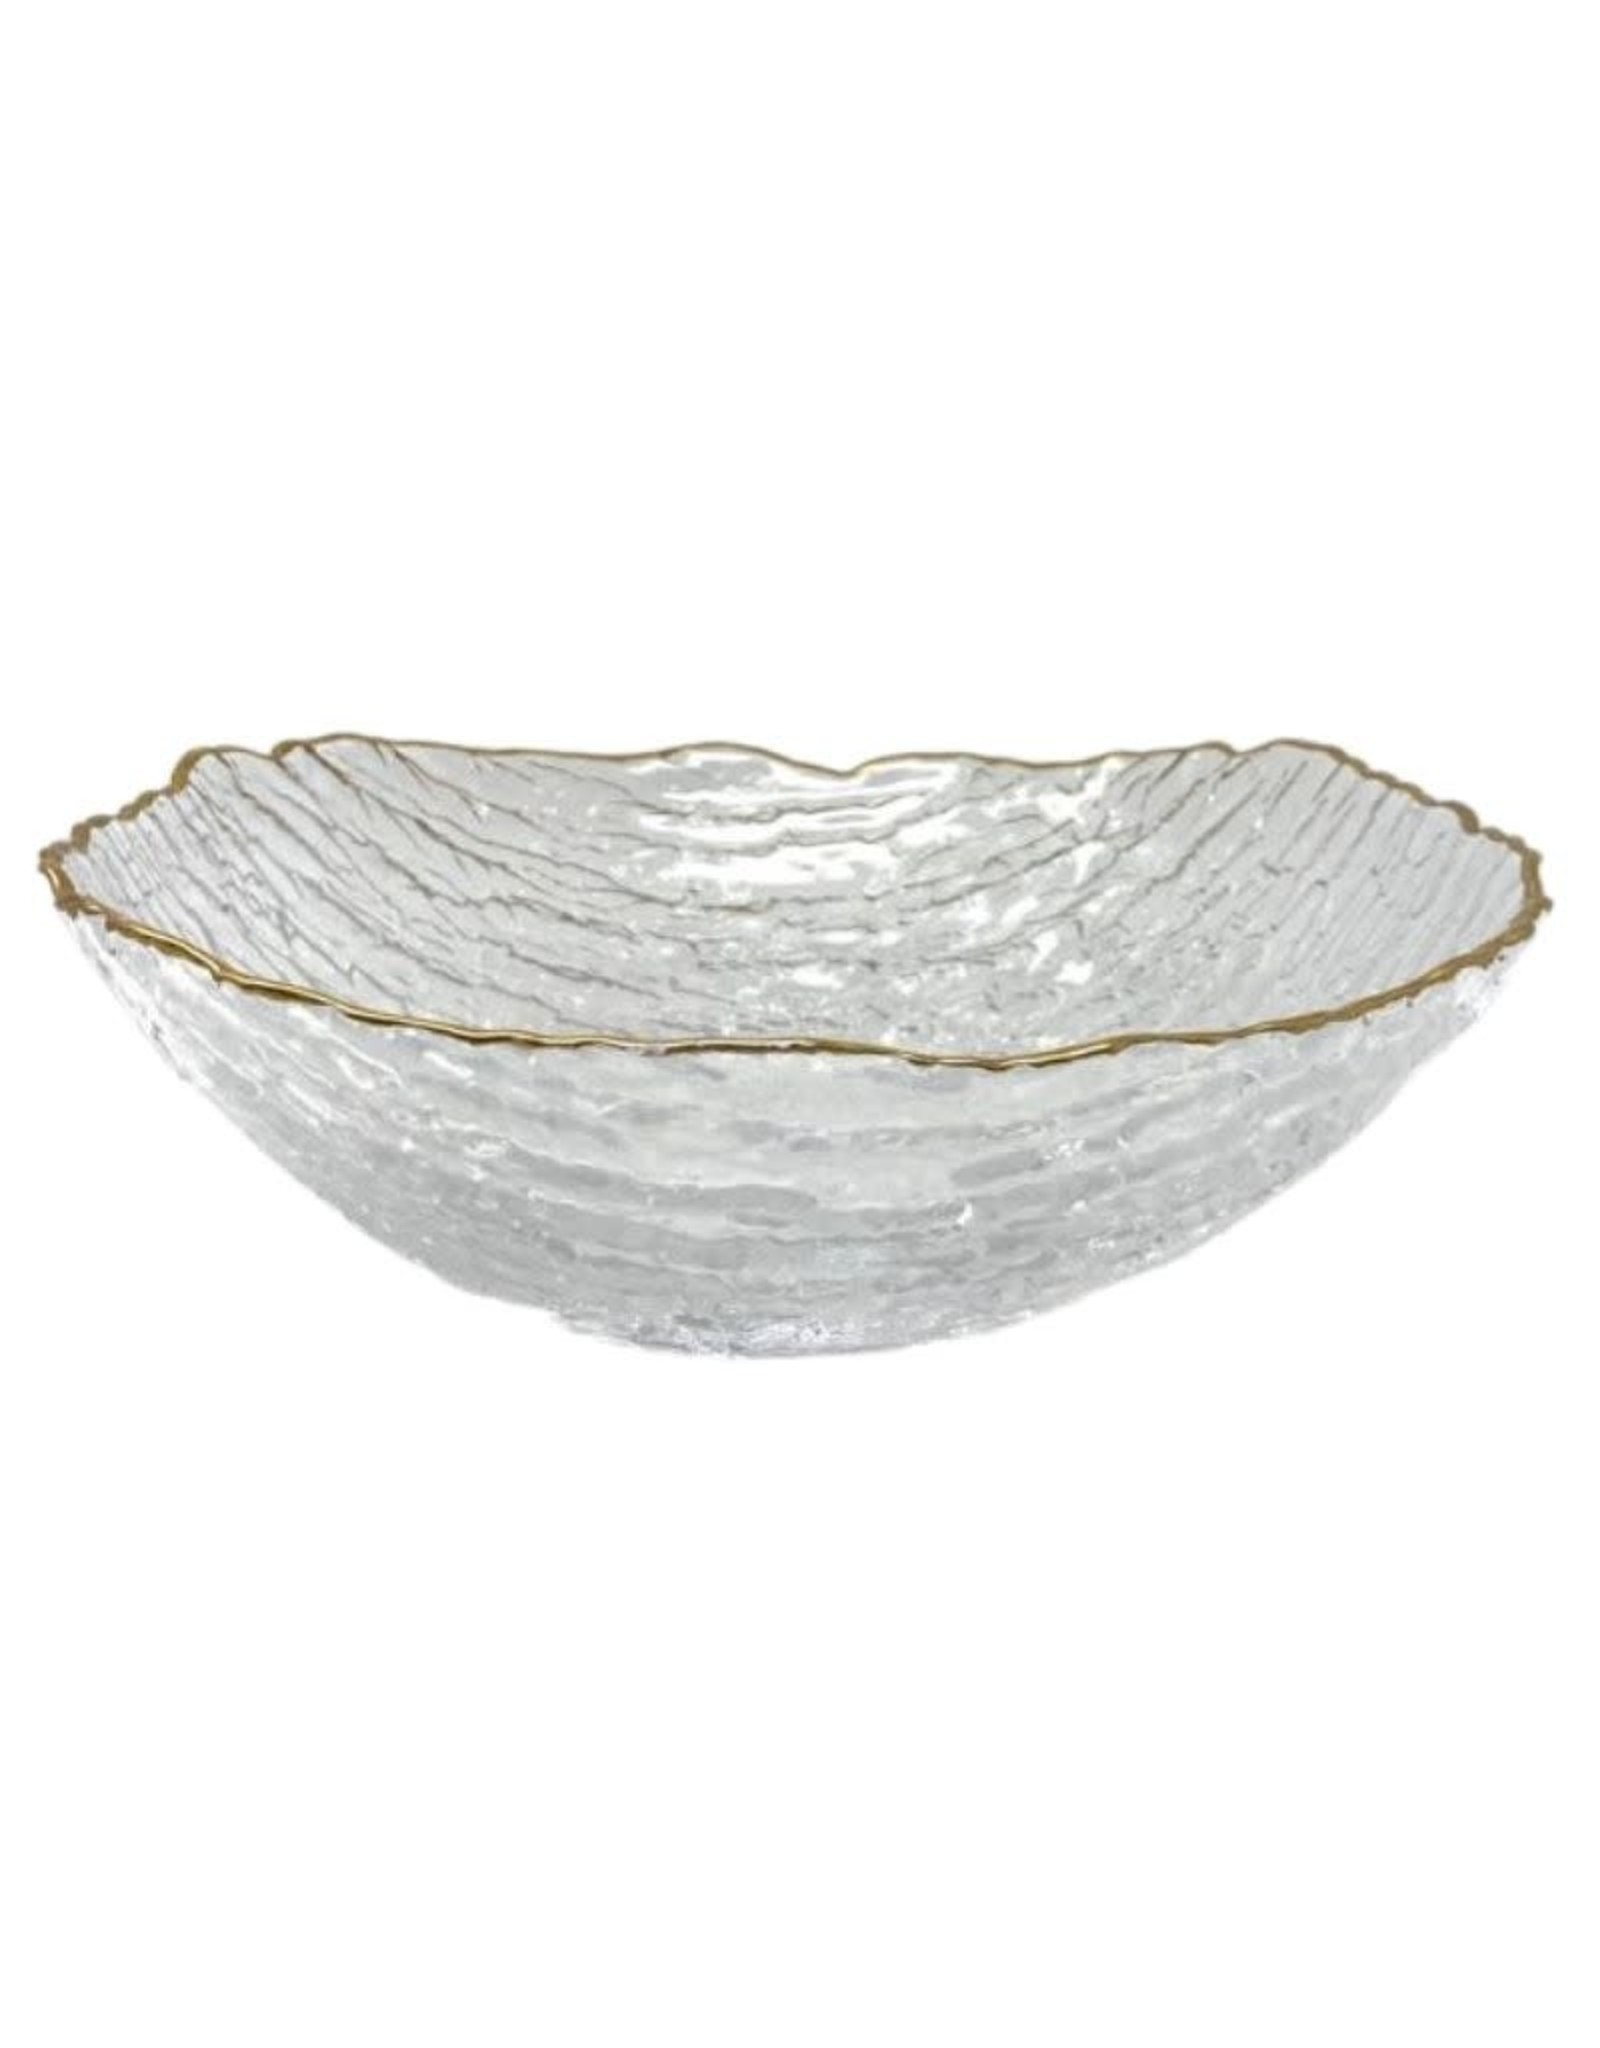 Crushed Glass Salad Bowl With Gold Rim